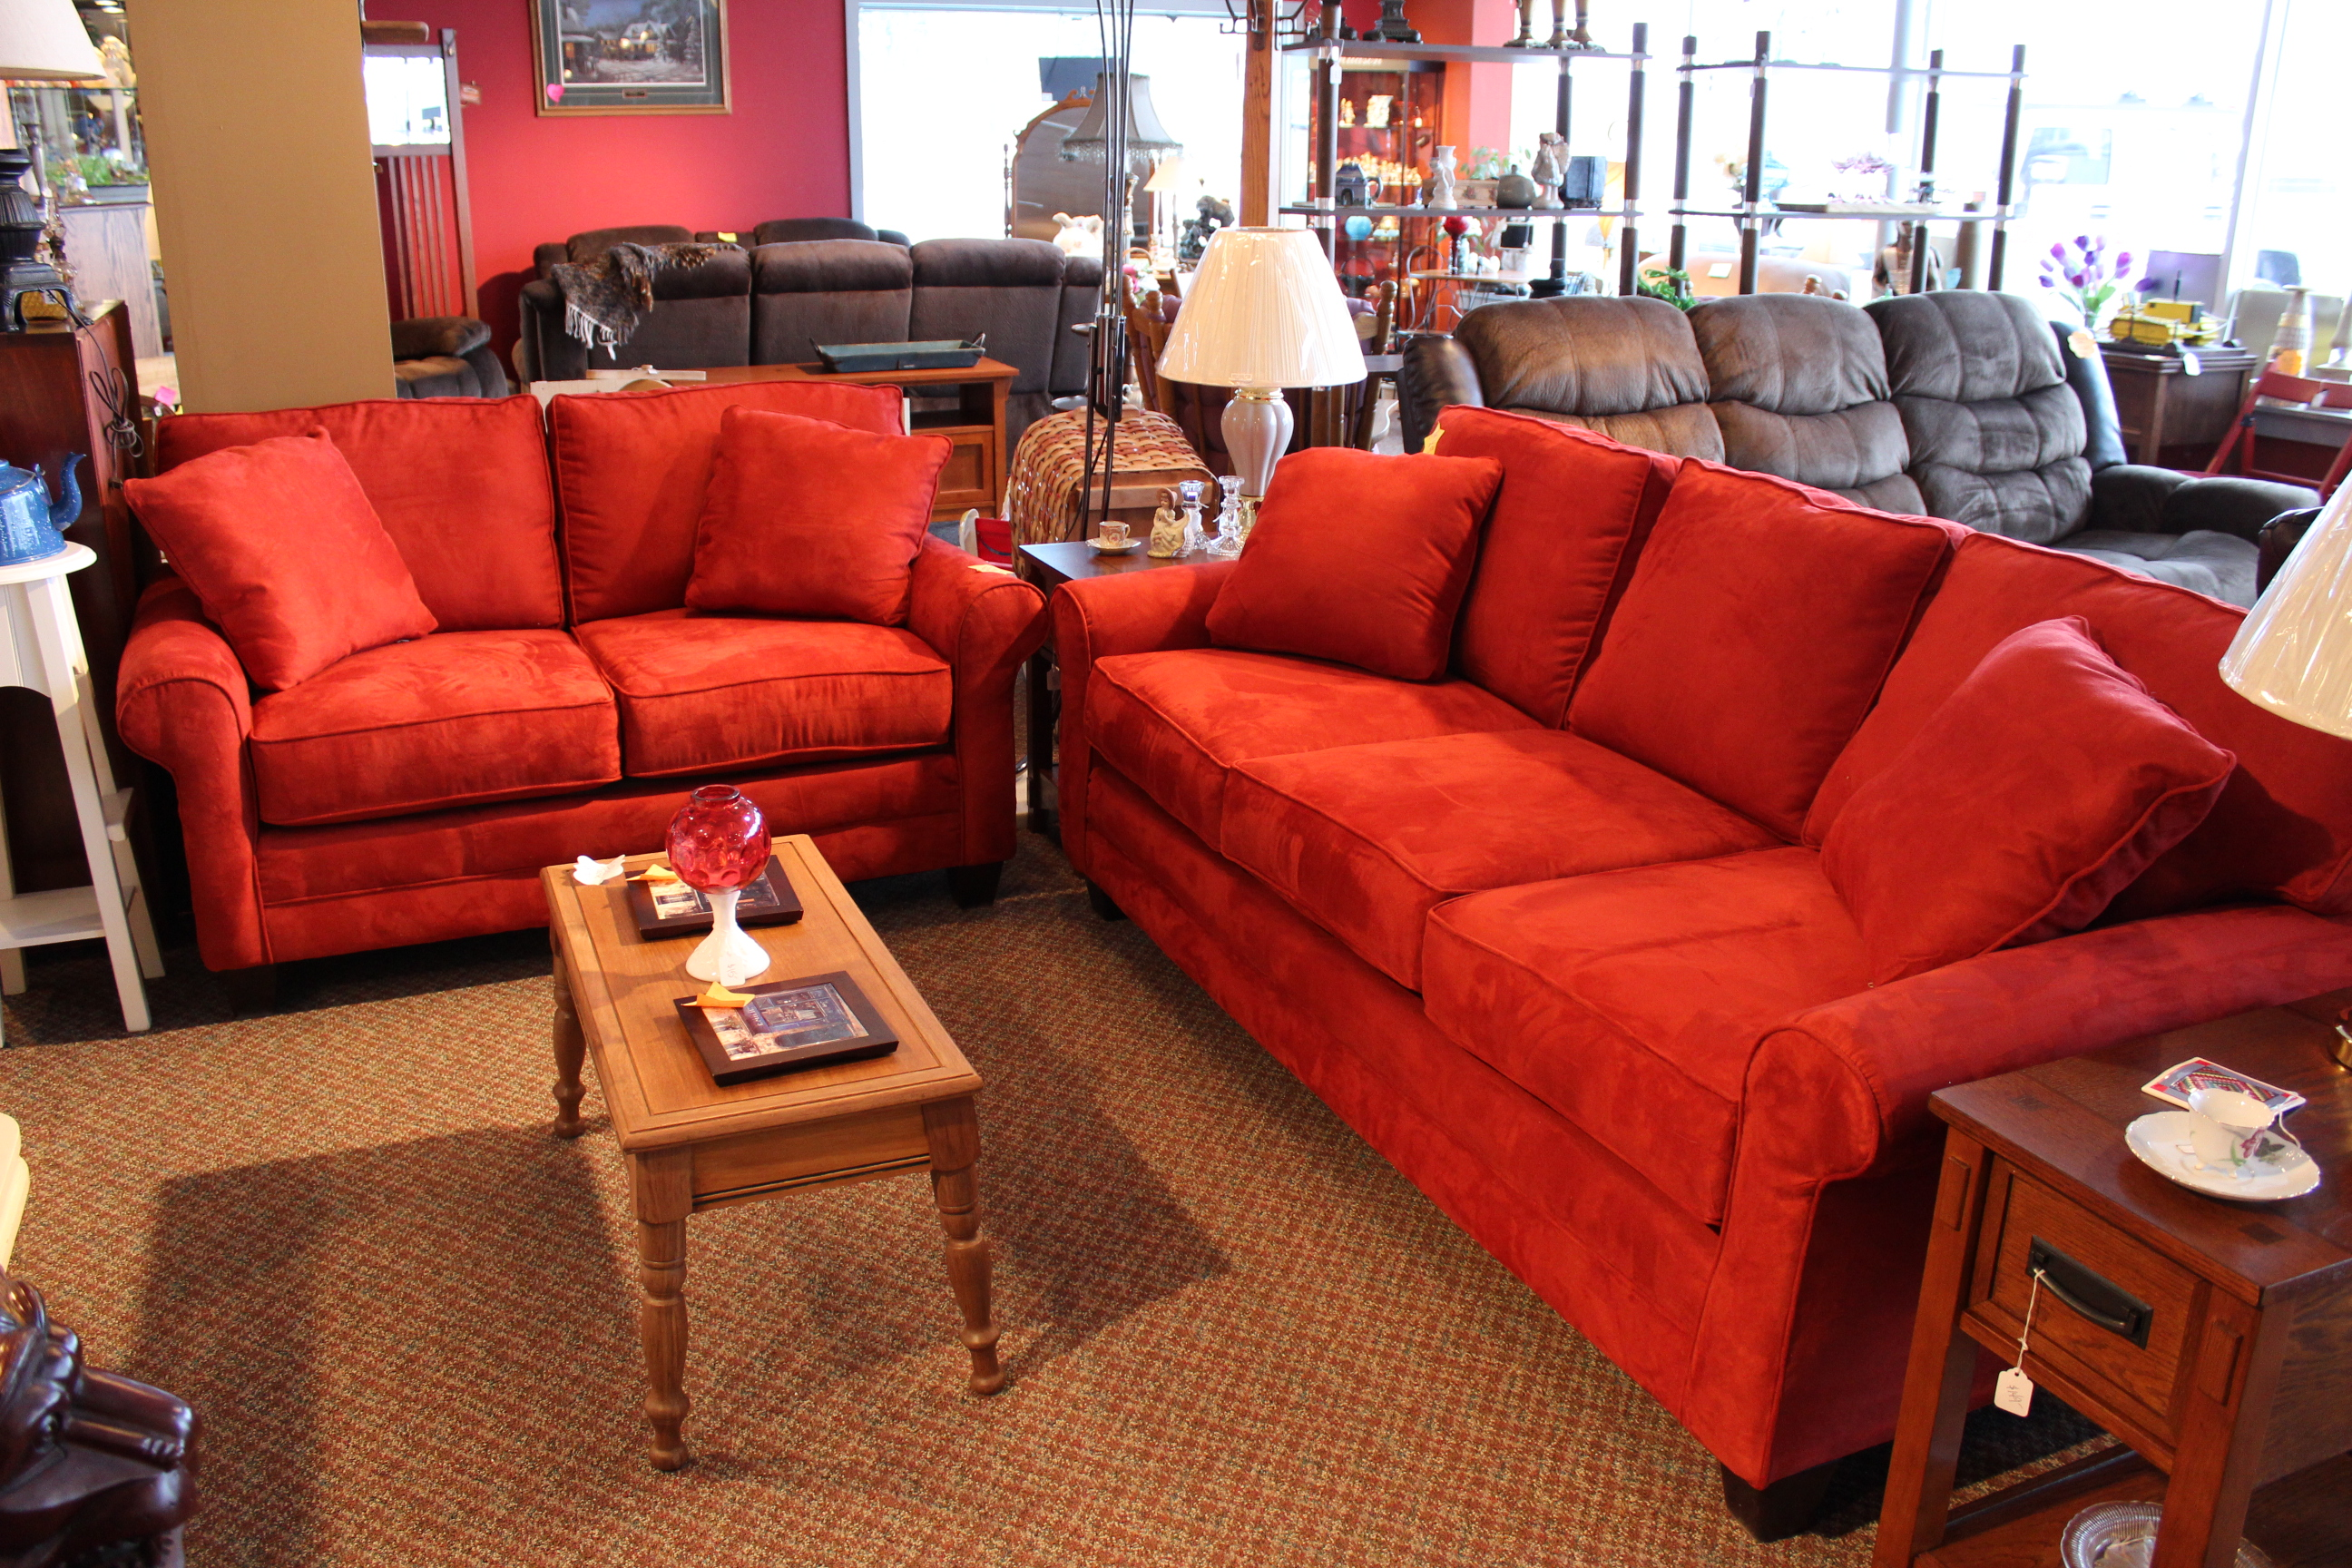 Home Decor Rochester Mn Best Furniture Stores Rochester Mn With Karma Consignments